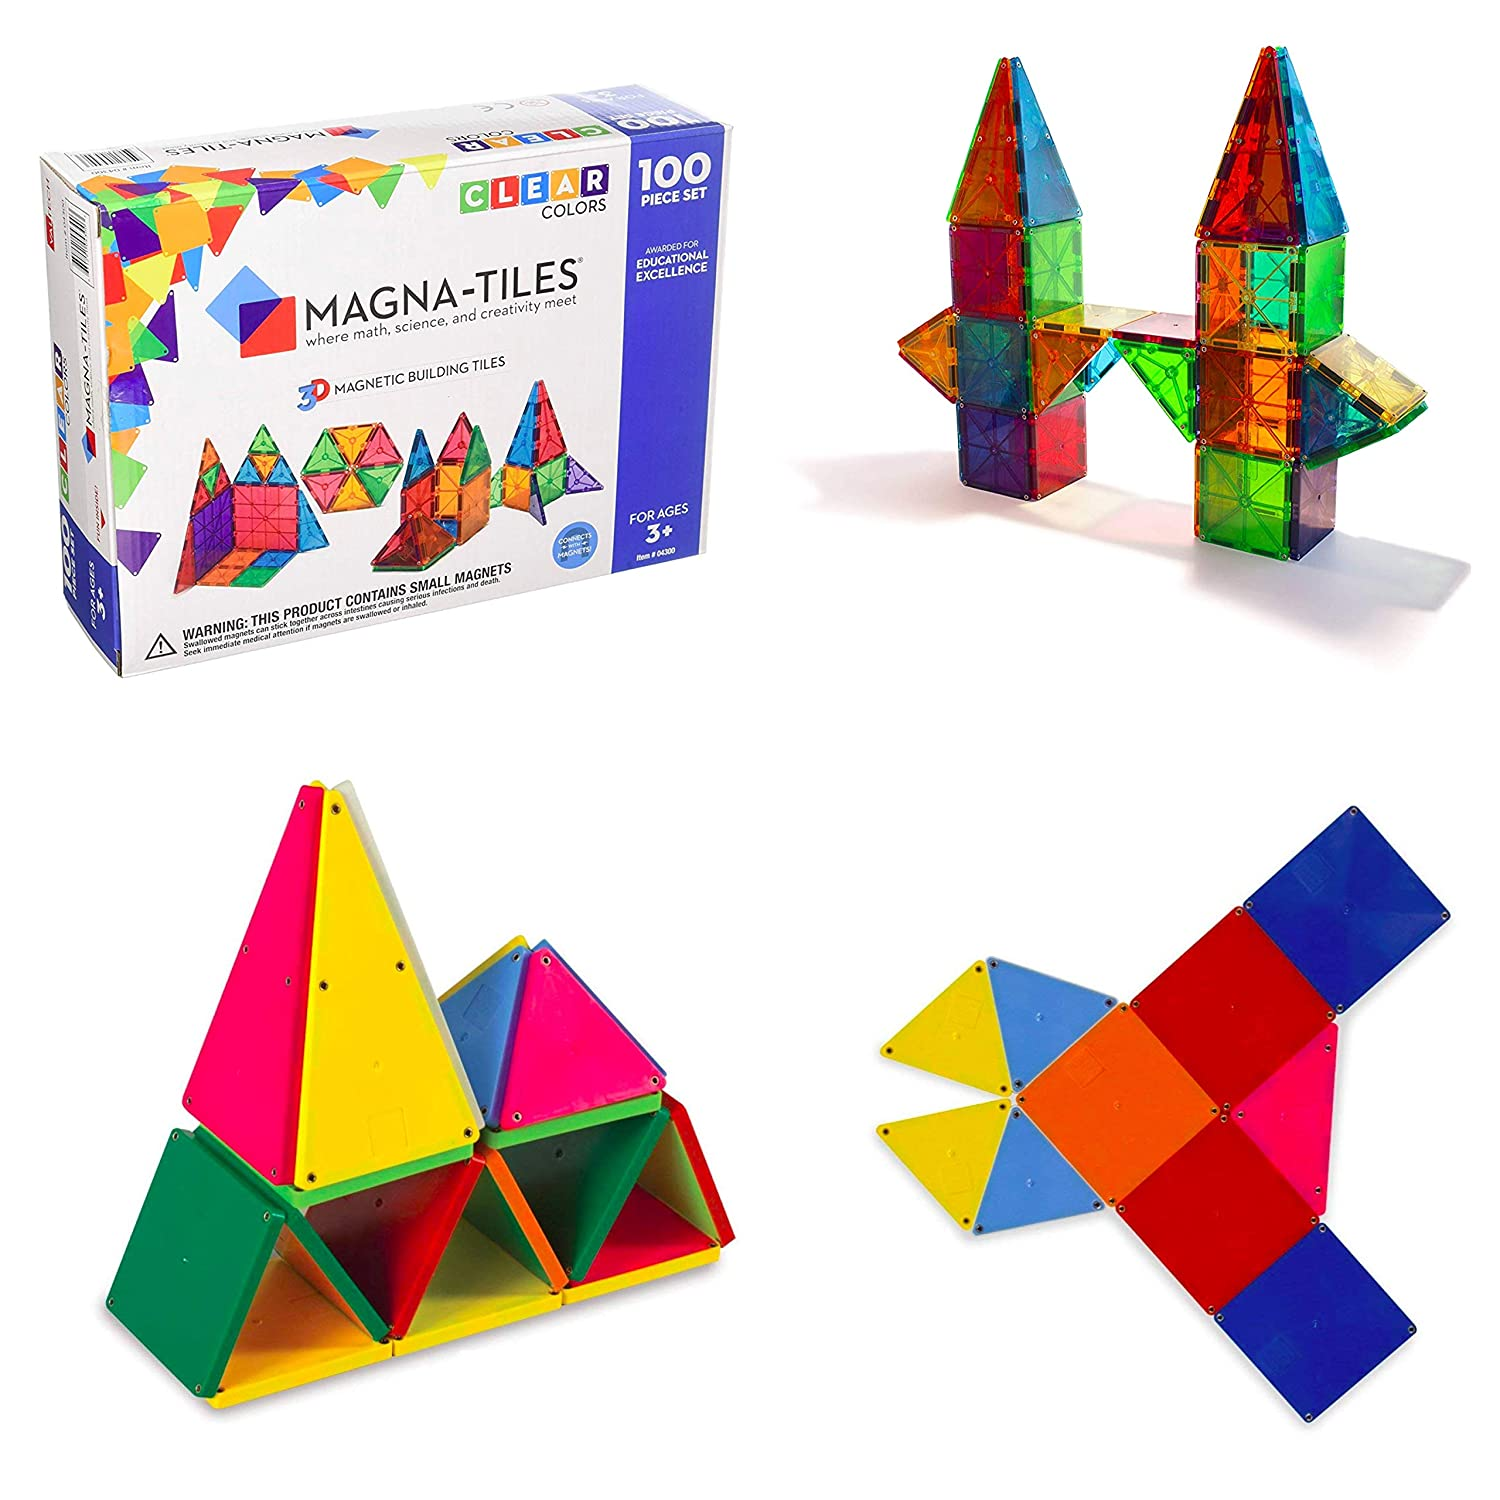 Amazon.com: Magna-Tiles 100-Piece Clear Colors Set - The Original,  Award-Winning Magnetic Building Tiles - Creativity and Educational - STEM  Approved ...